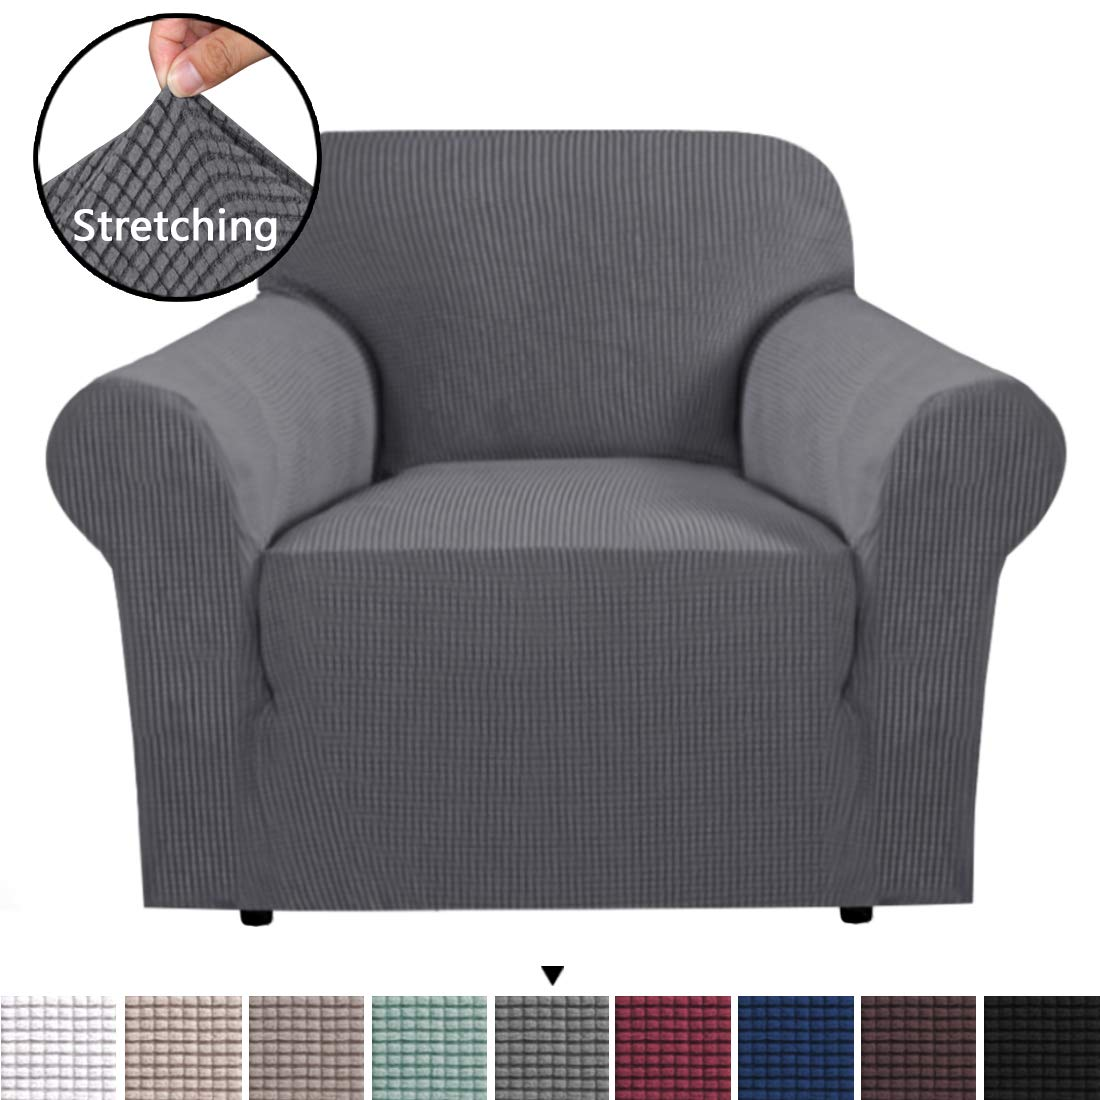 H.VERSAILTEX Stretch Chair Slipcover Sofa Cover Furniture Protector Cover Luxury Lycra High Spandex Small Checks Knitted Jacquard Sofa Cover Chair Covers for Living Room (Chair-1 Seater, Grey)